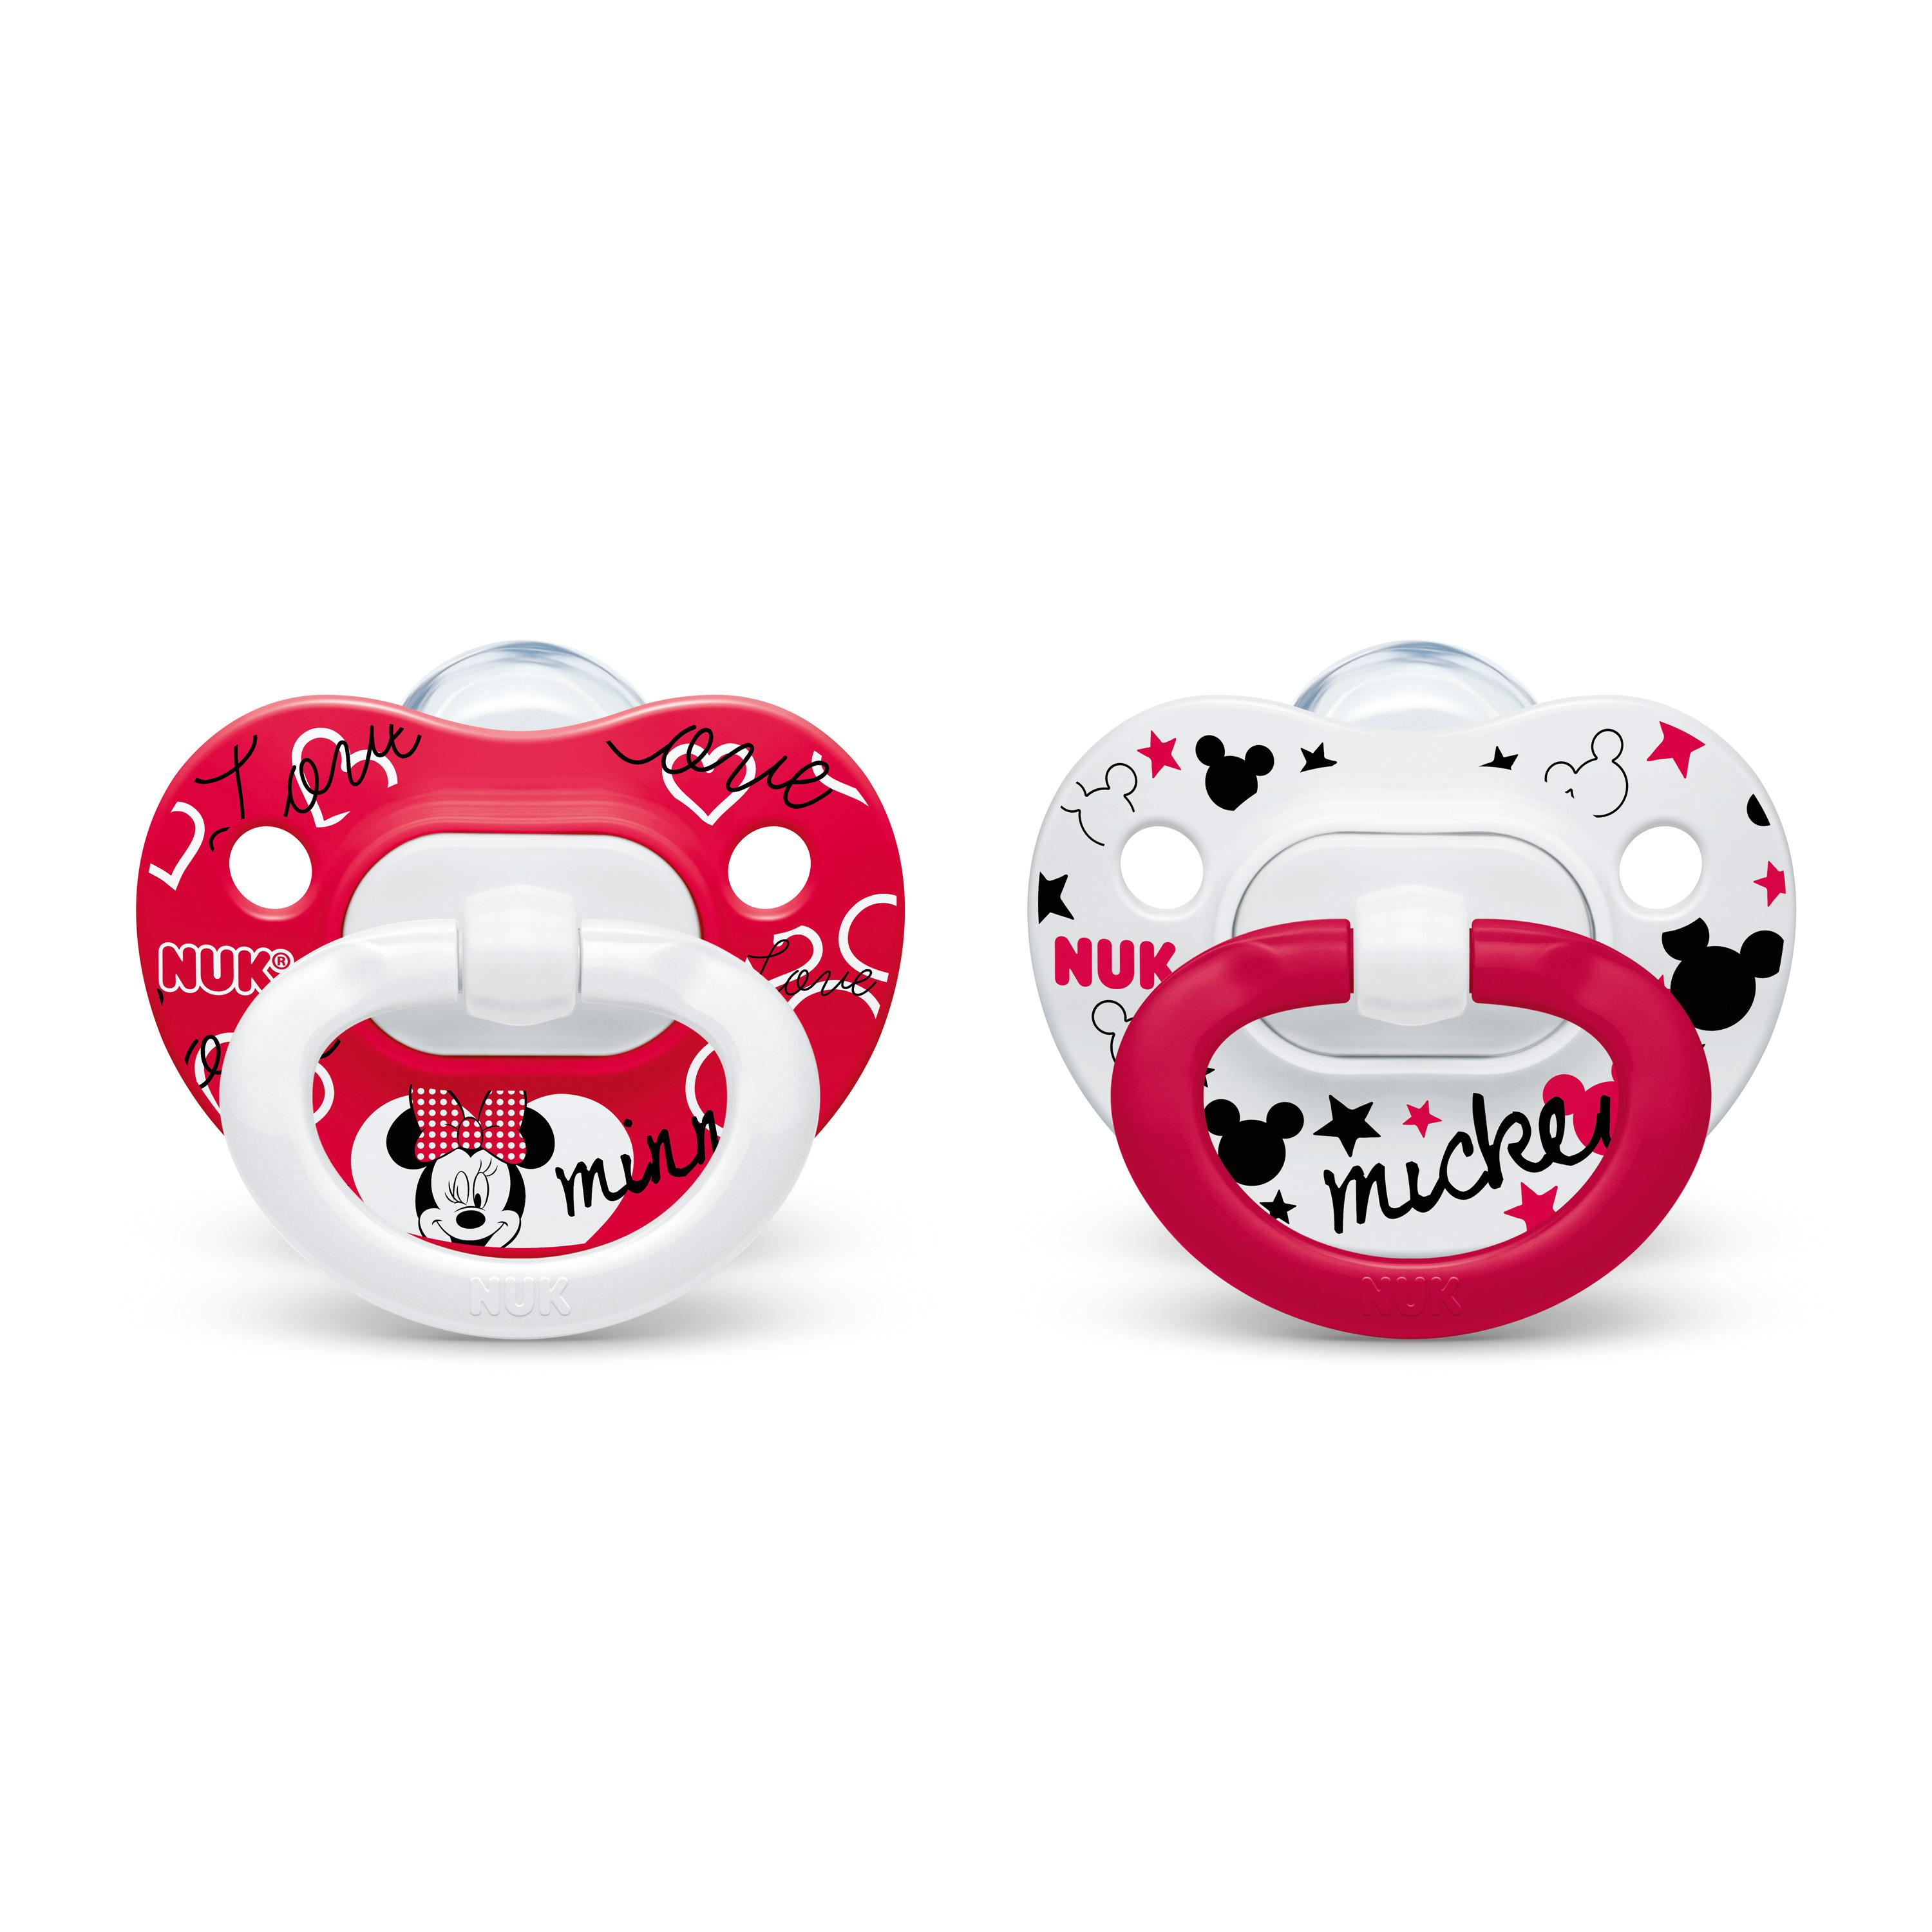 NUK® Disney® Mickey Mouse and Minnie Mouse Orthodontic Pacifiers, 0-6 Months, 2-Pack Product Image 5 of 6